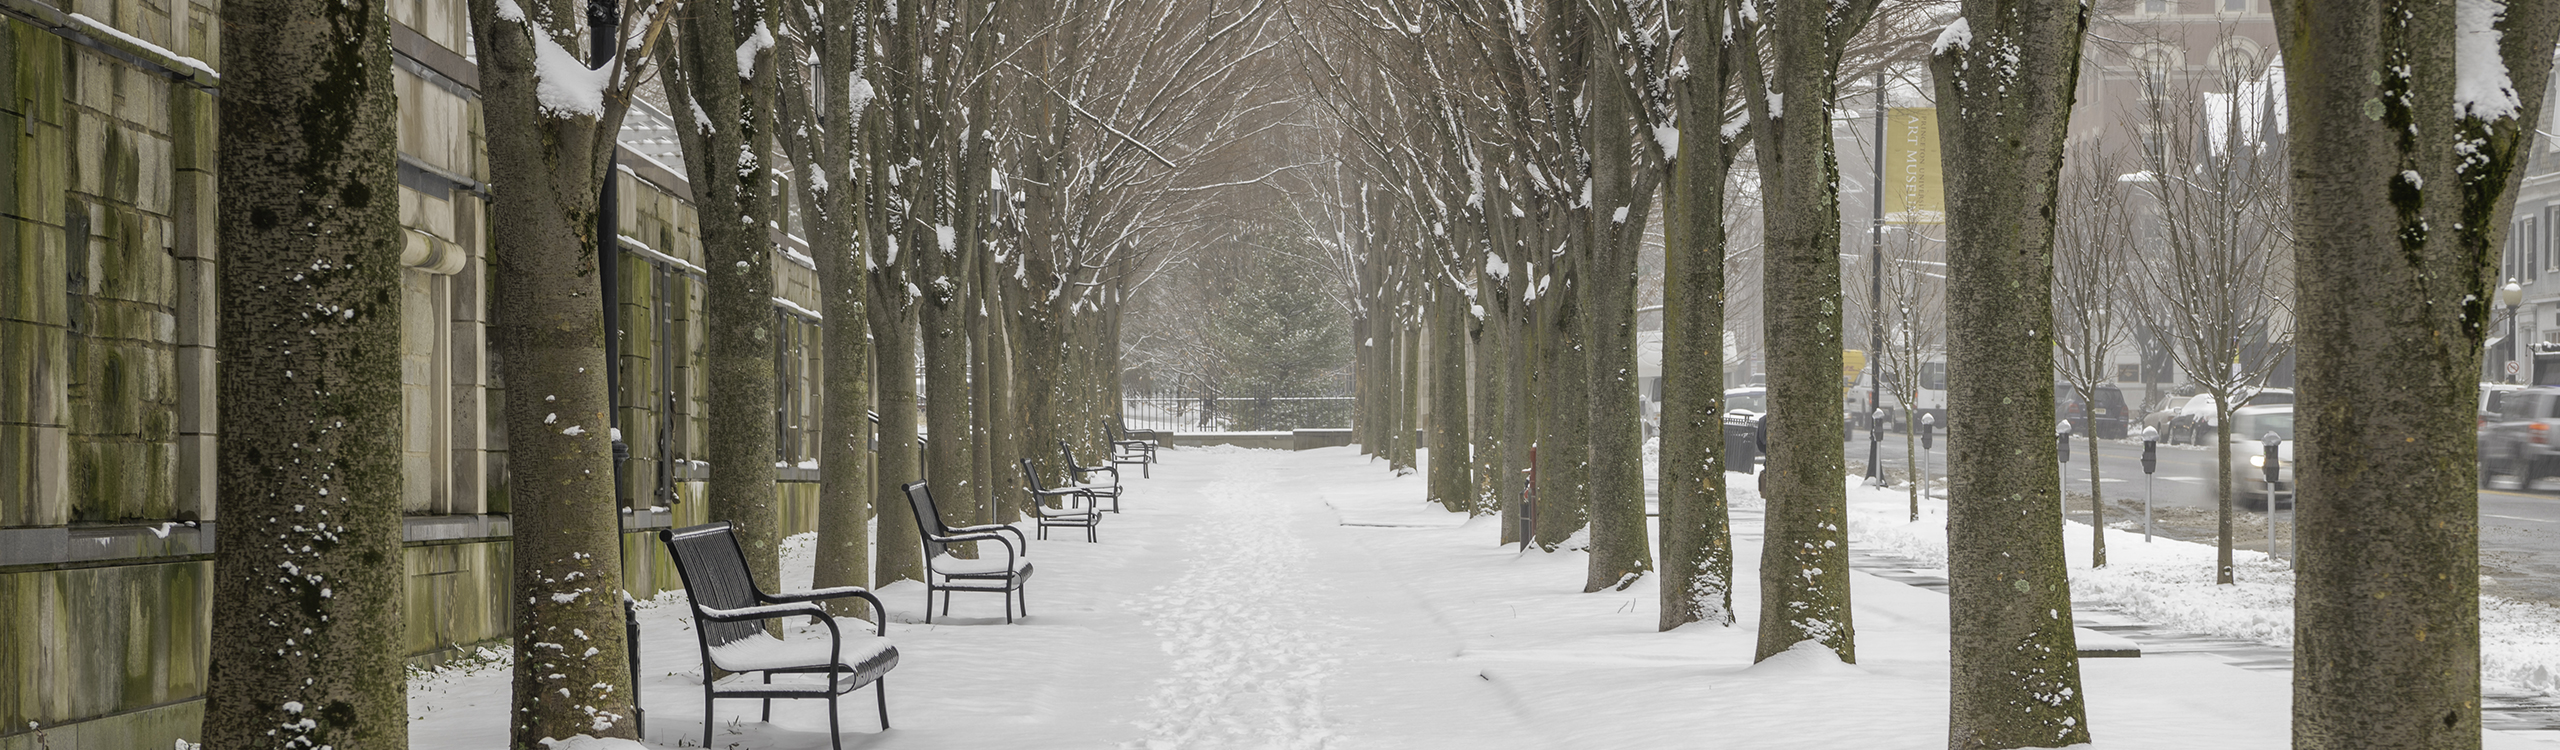 Princeton New Jersey snow covered side walk